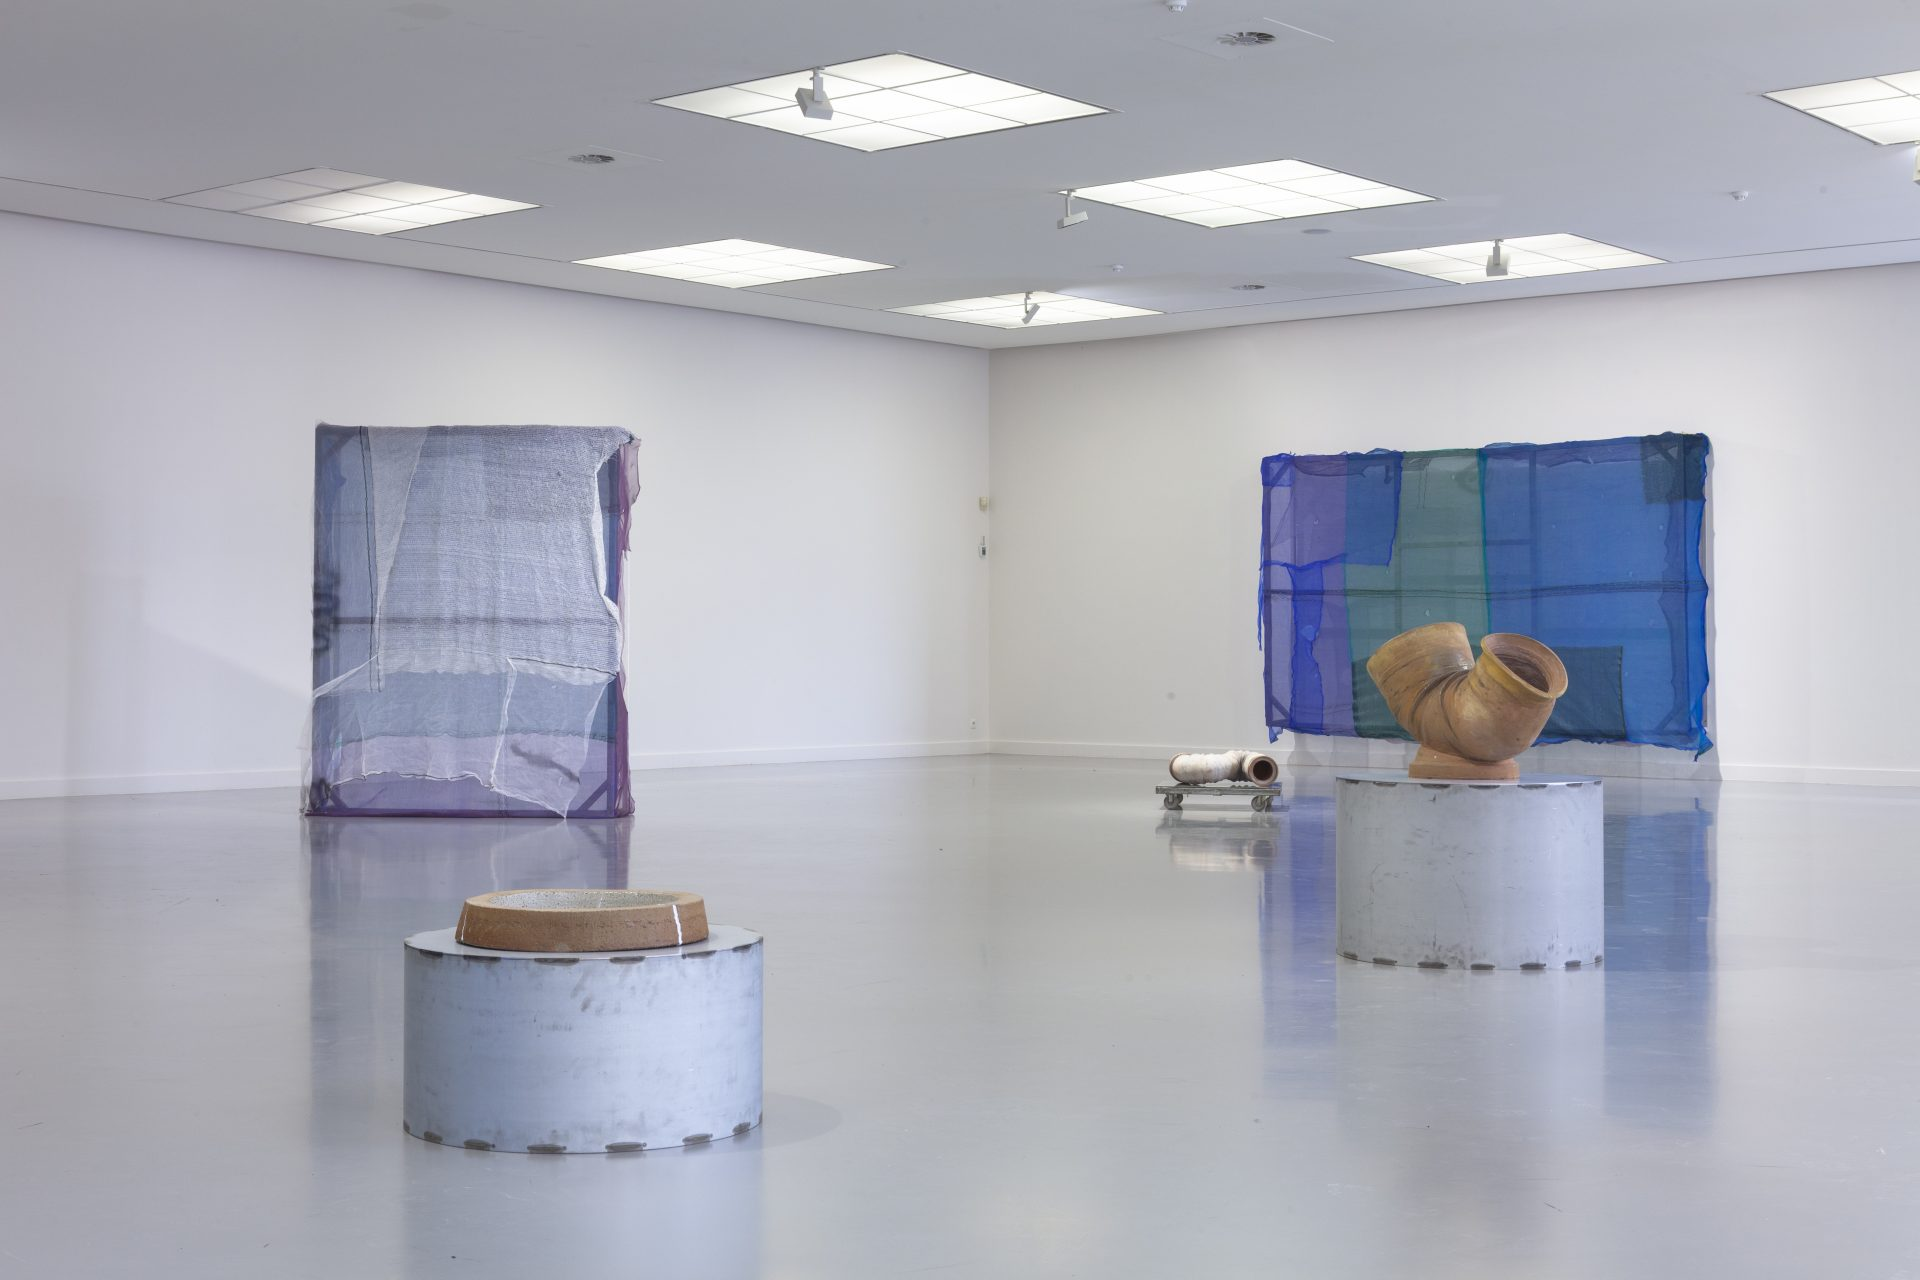 Jumana Manna, Thirty Plumbers in the Belly, M HKA – Museum of Contemporary Art, 2 May – 29 August 2021